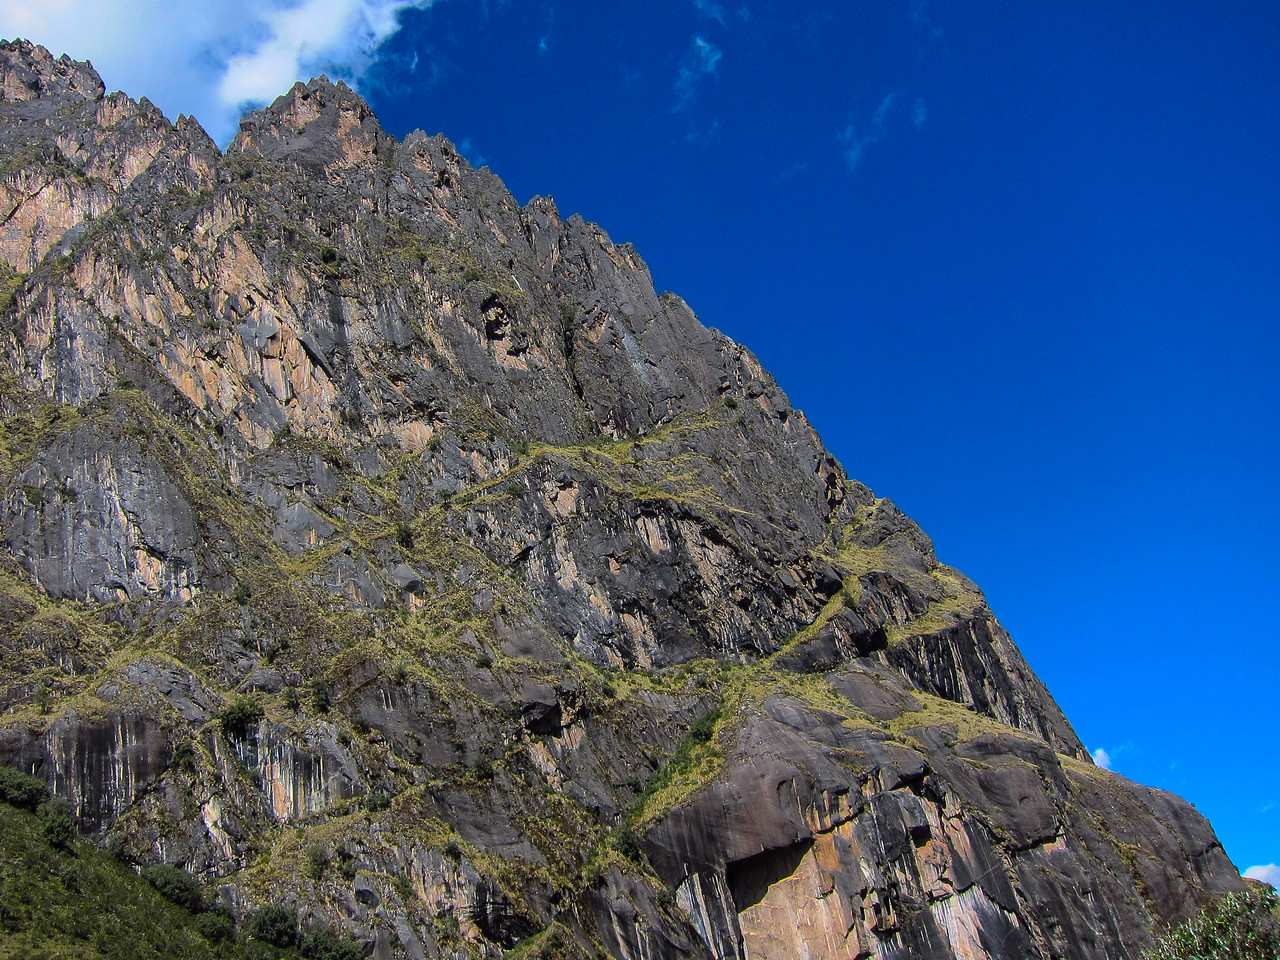 Glaciers carved the mountains in the Pumahuanca Valley